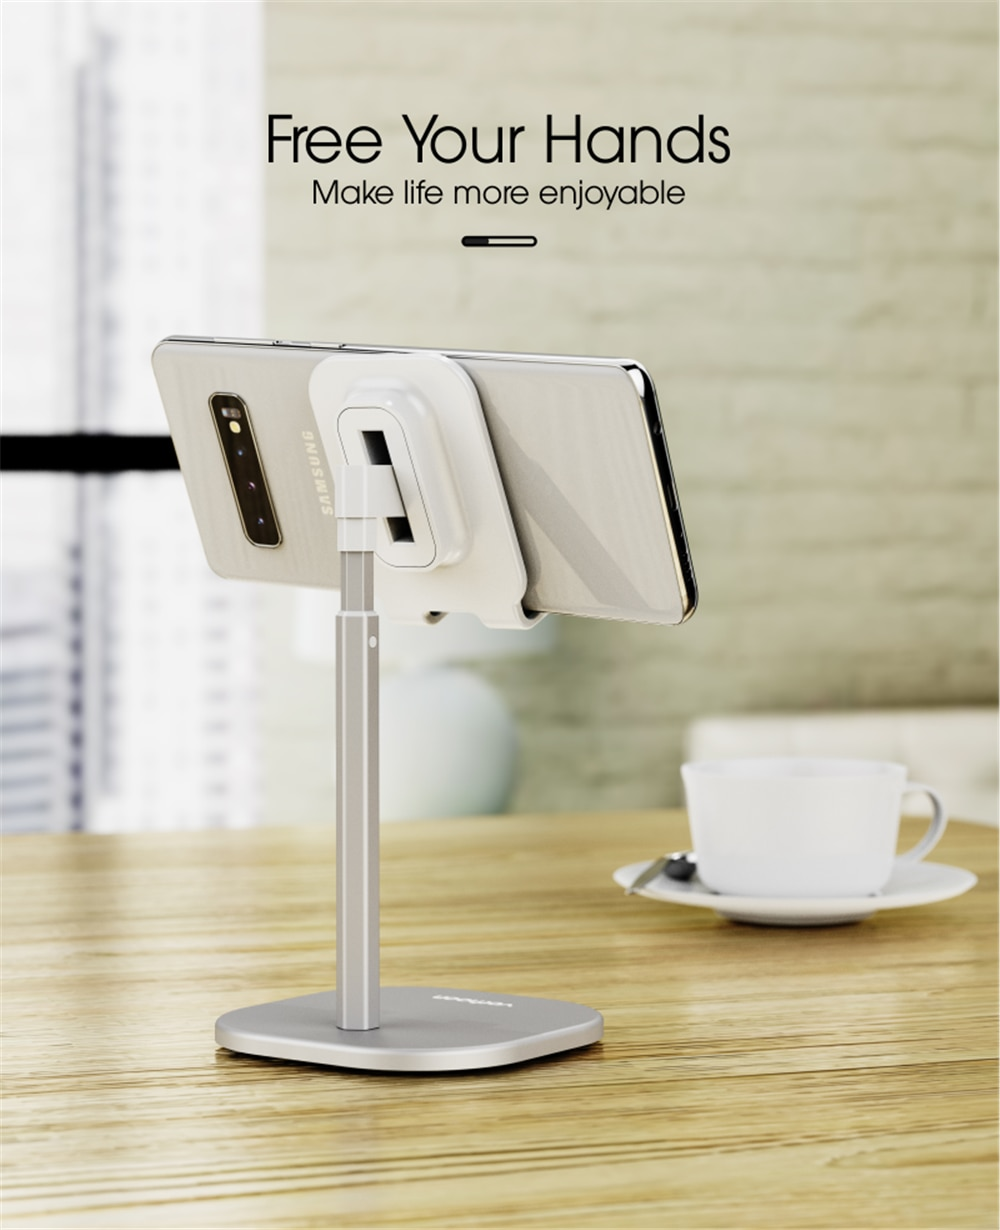 Vothoon Desk Mobile Phone Holder Stand For iPhone Universal Adjustable Metal Desktop Table Tablet Holder Stand For iPad Pro